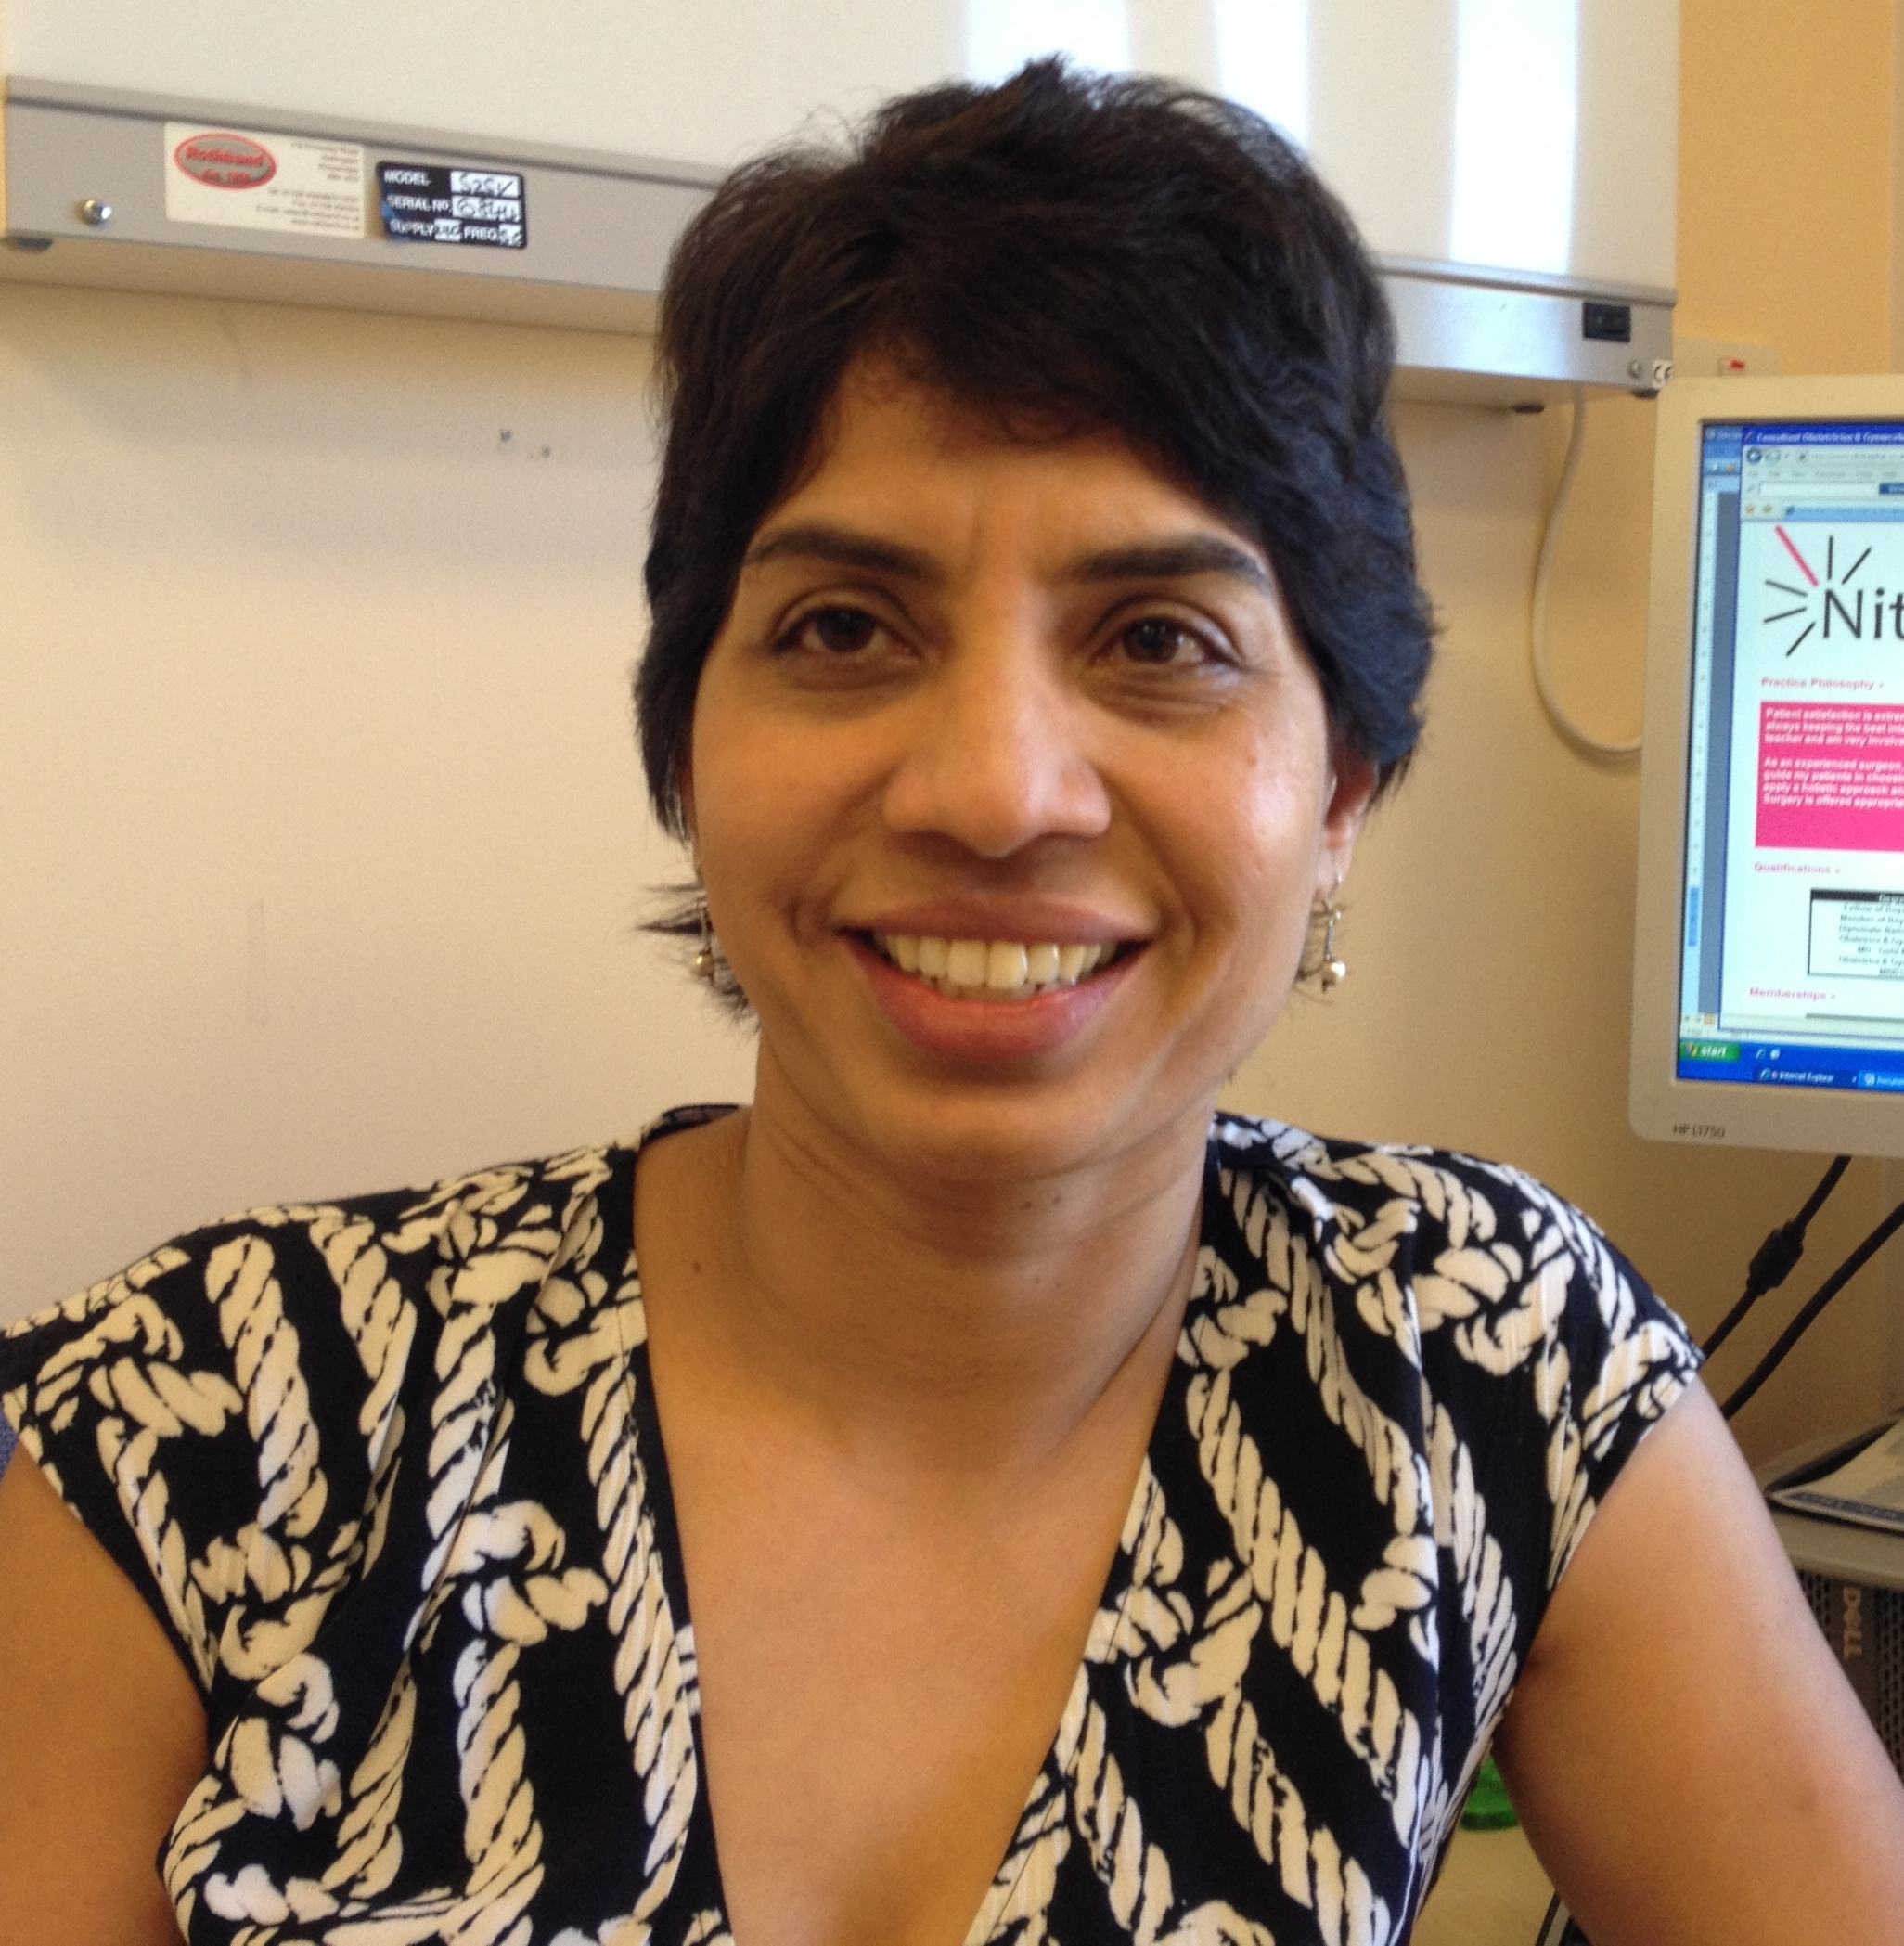 Nitu Bajekal works at an Enfield hospital